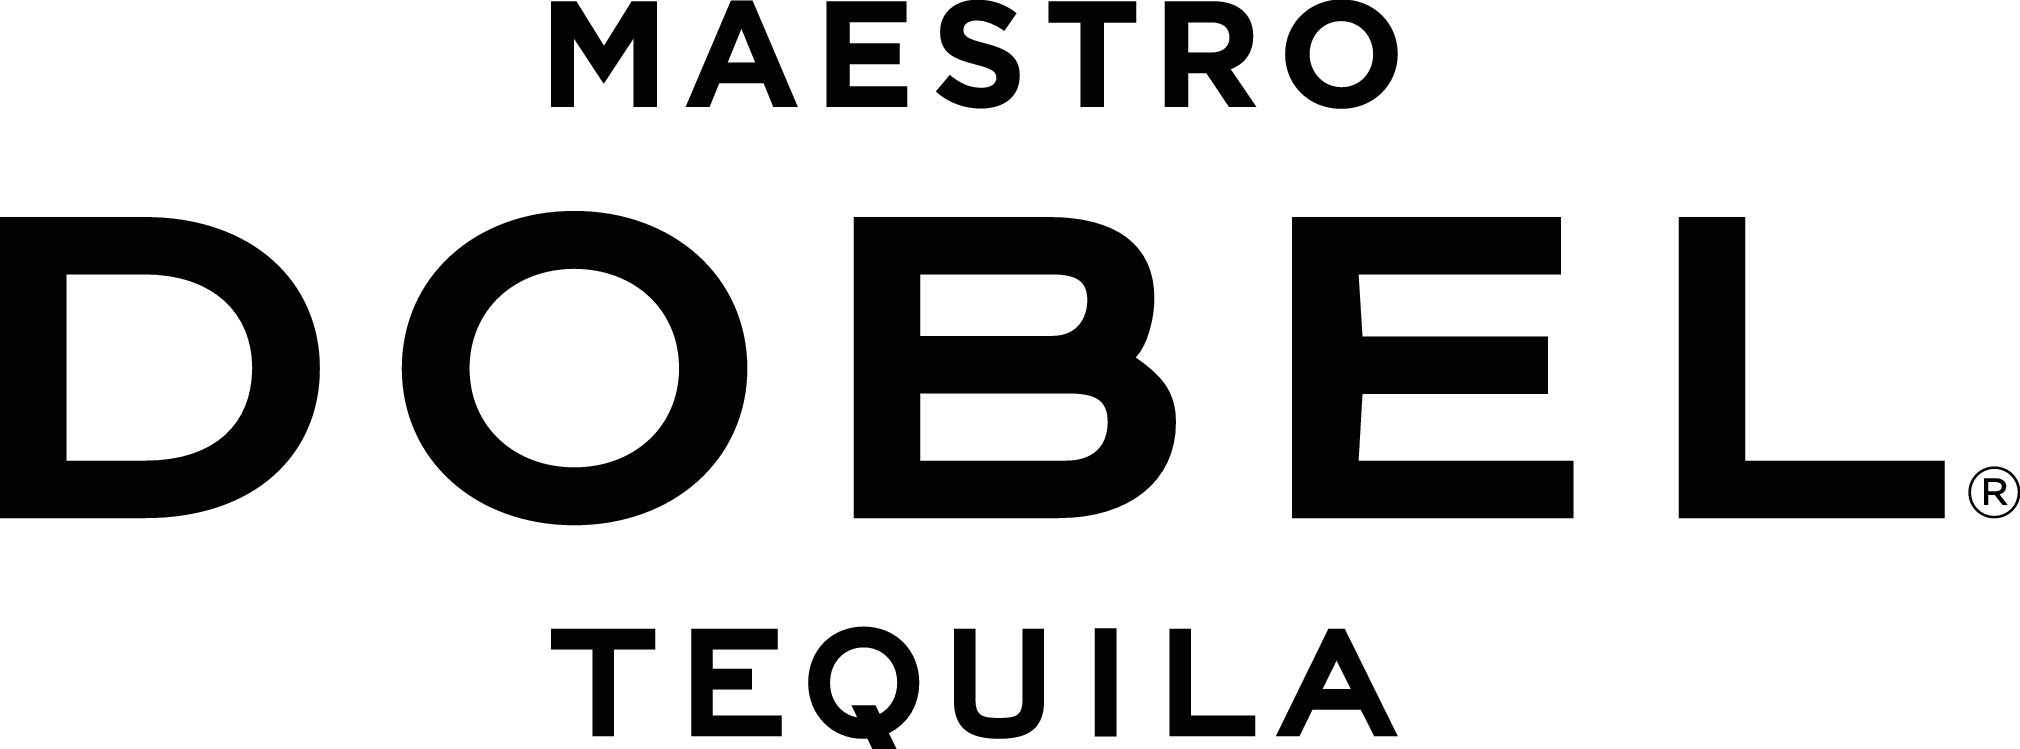 Dobel Black on White Vector - Logo - Roberto Rosa.png